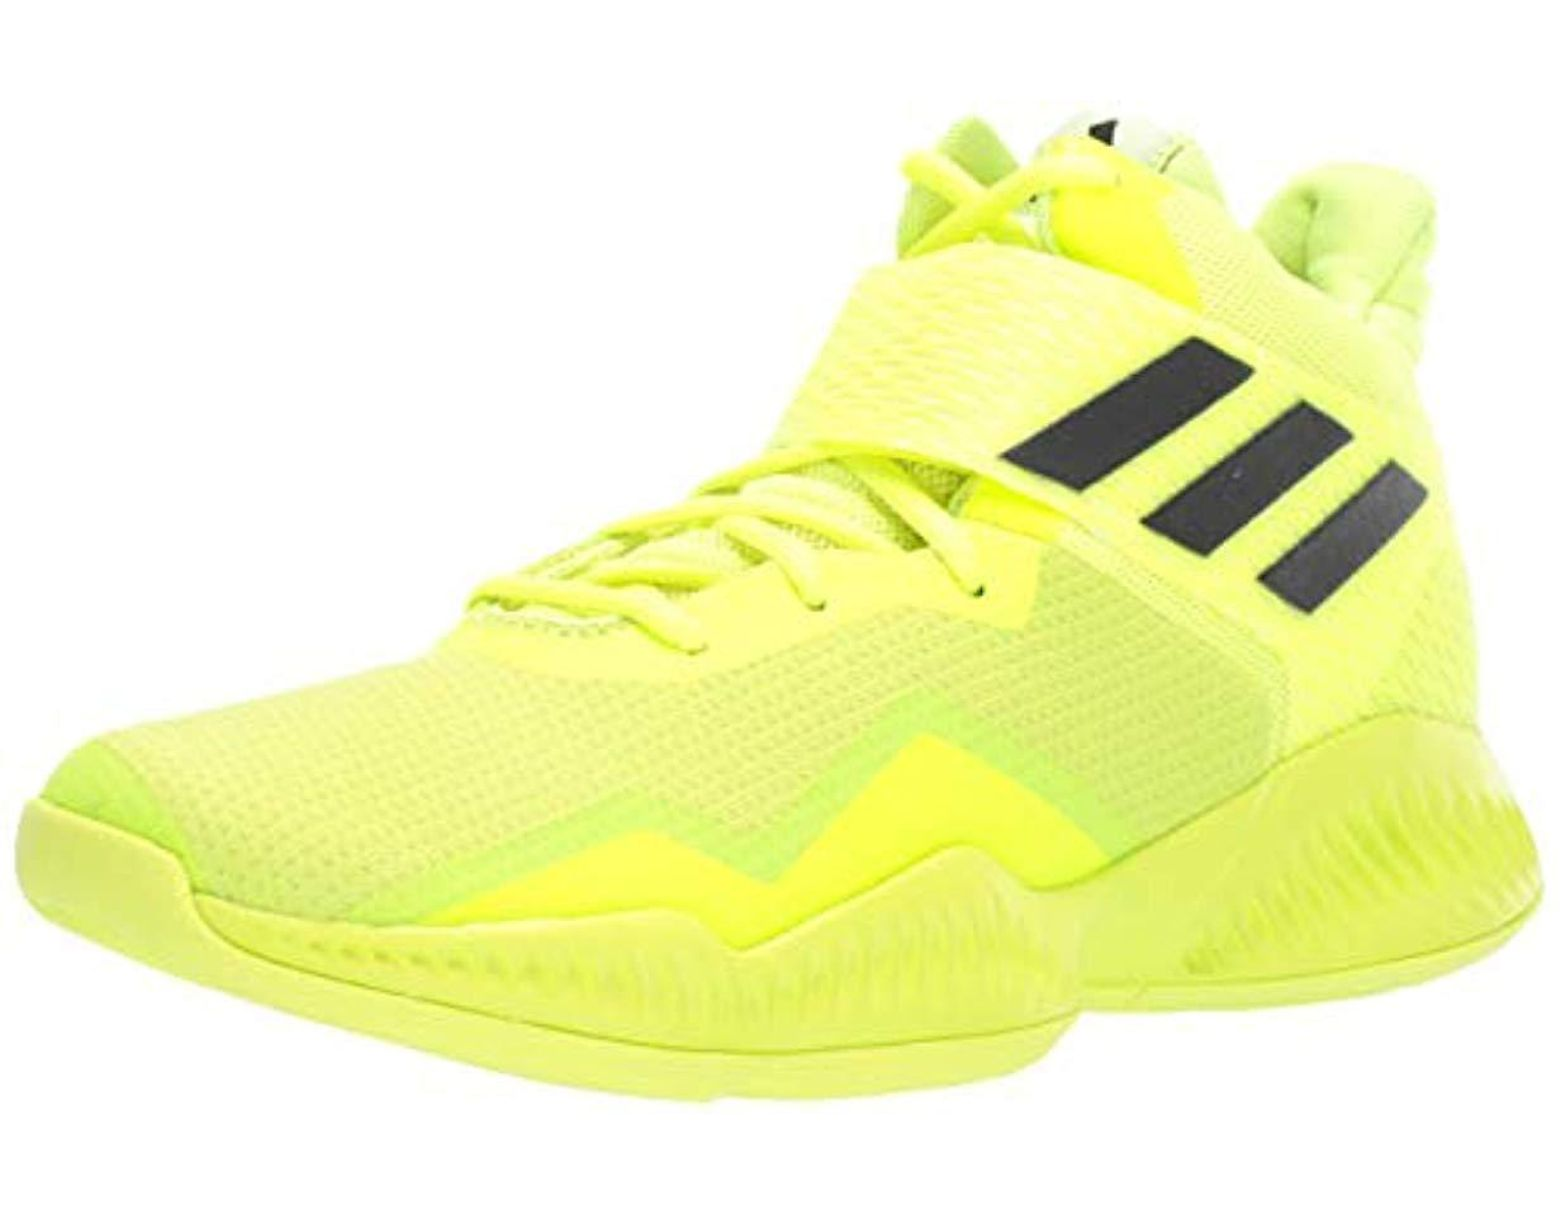 367b405bc Lyst - adidas Explosive Bounce 2018 Basketball Shoe in Yellow for Men